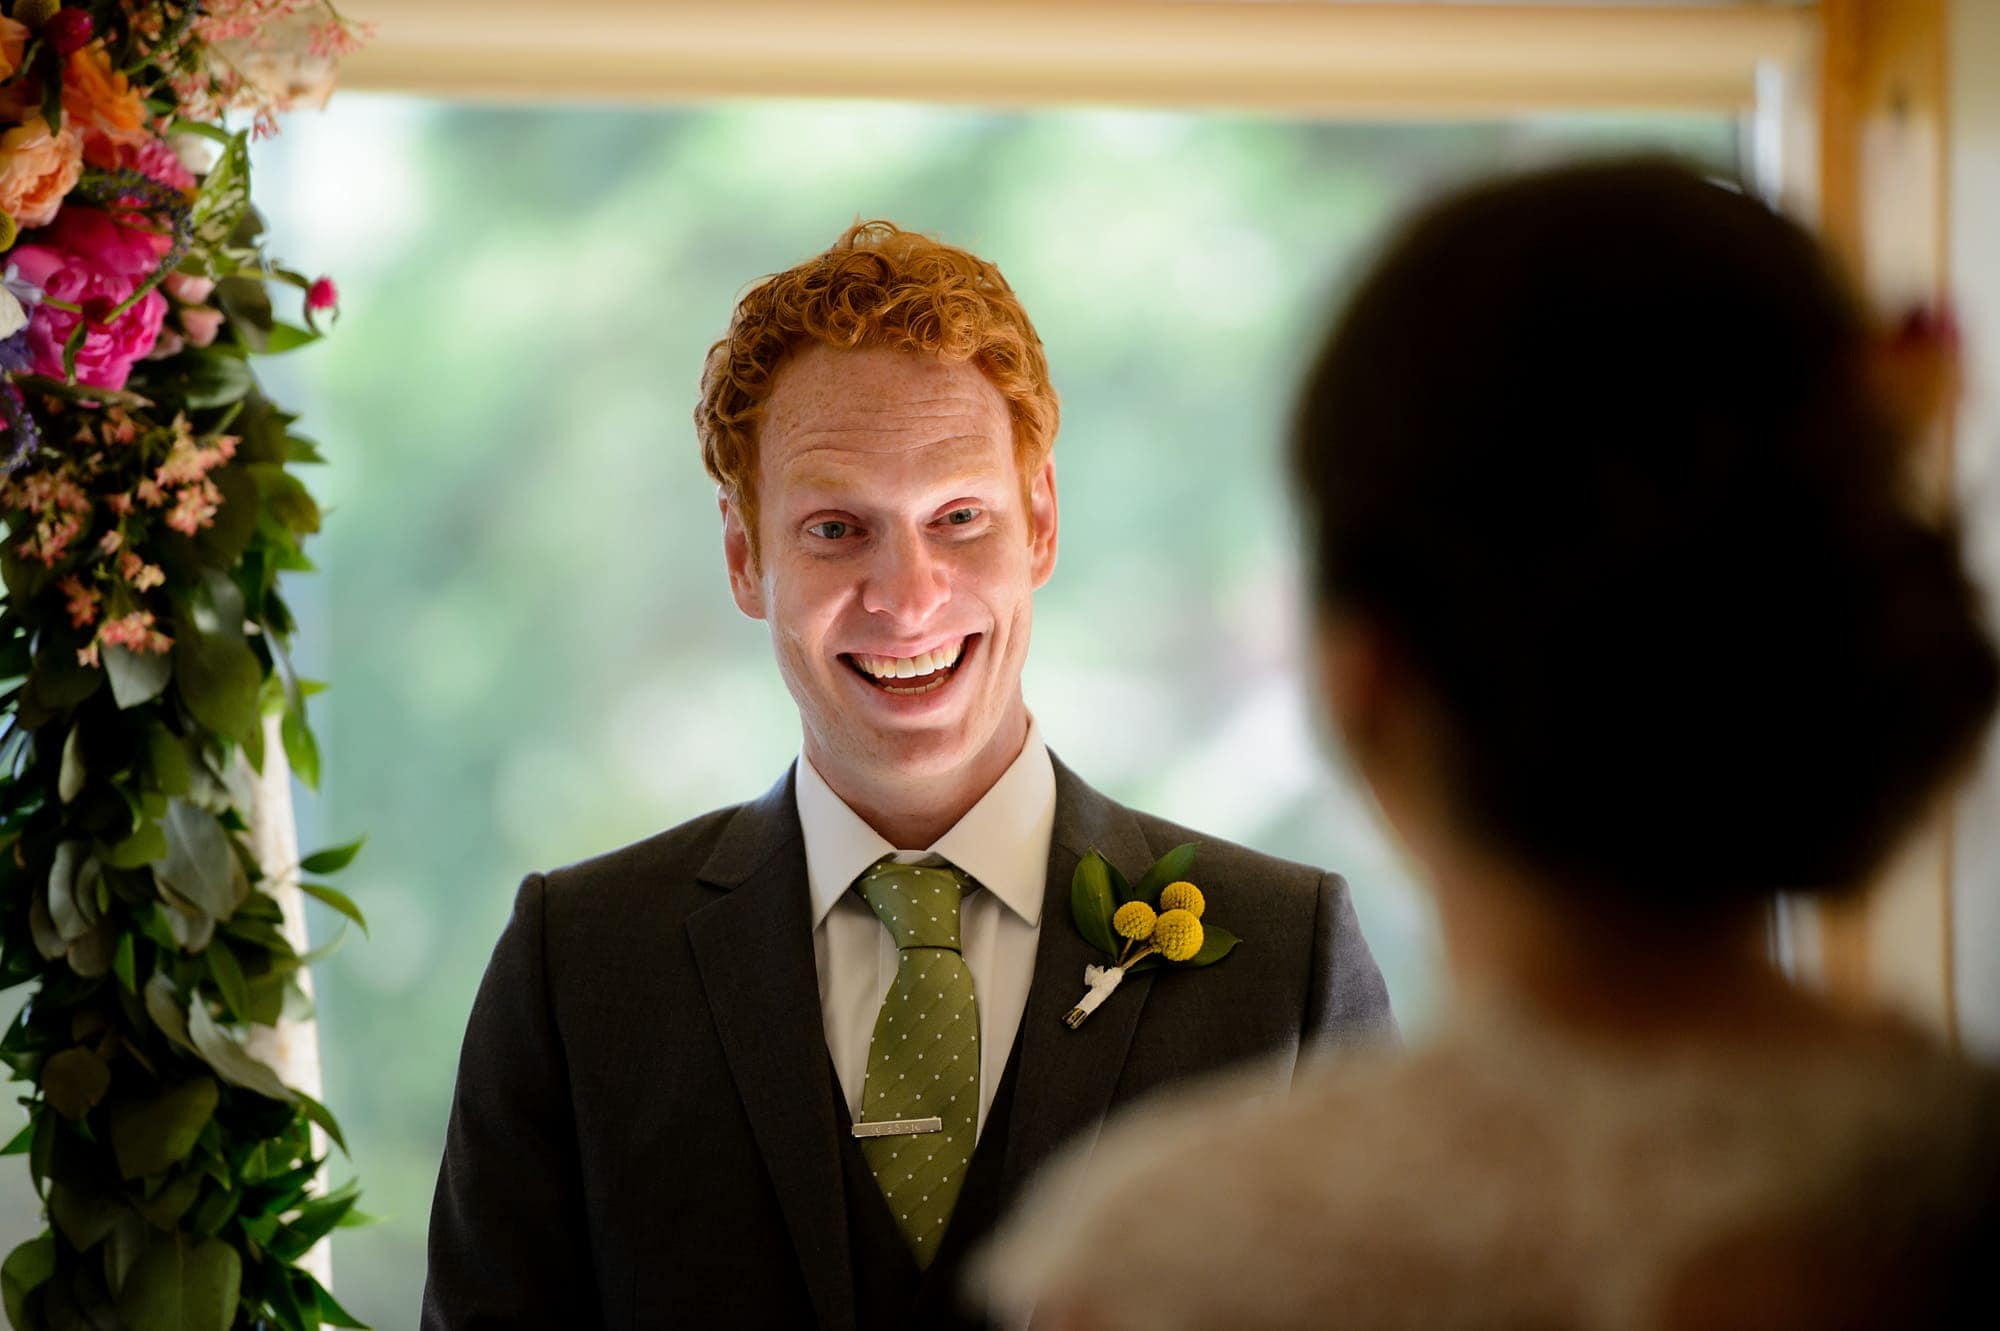 A groom's reaction to seeing his bride for the first time